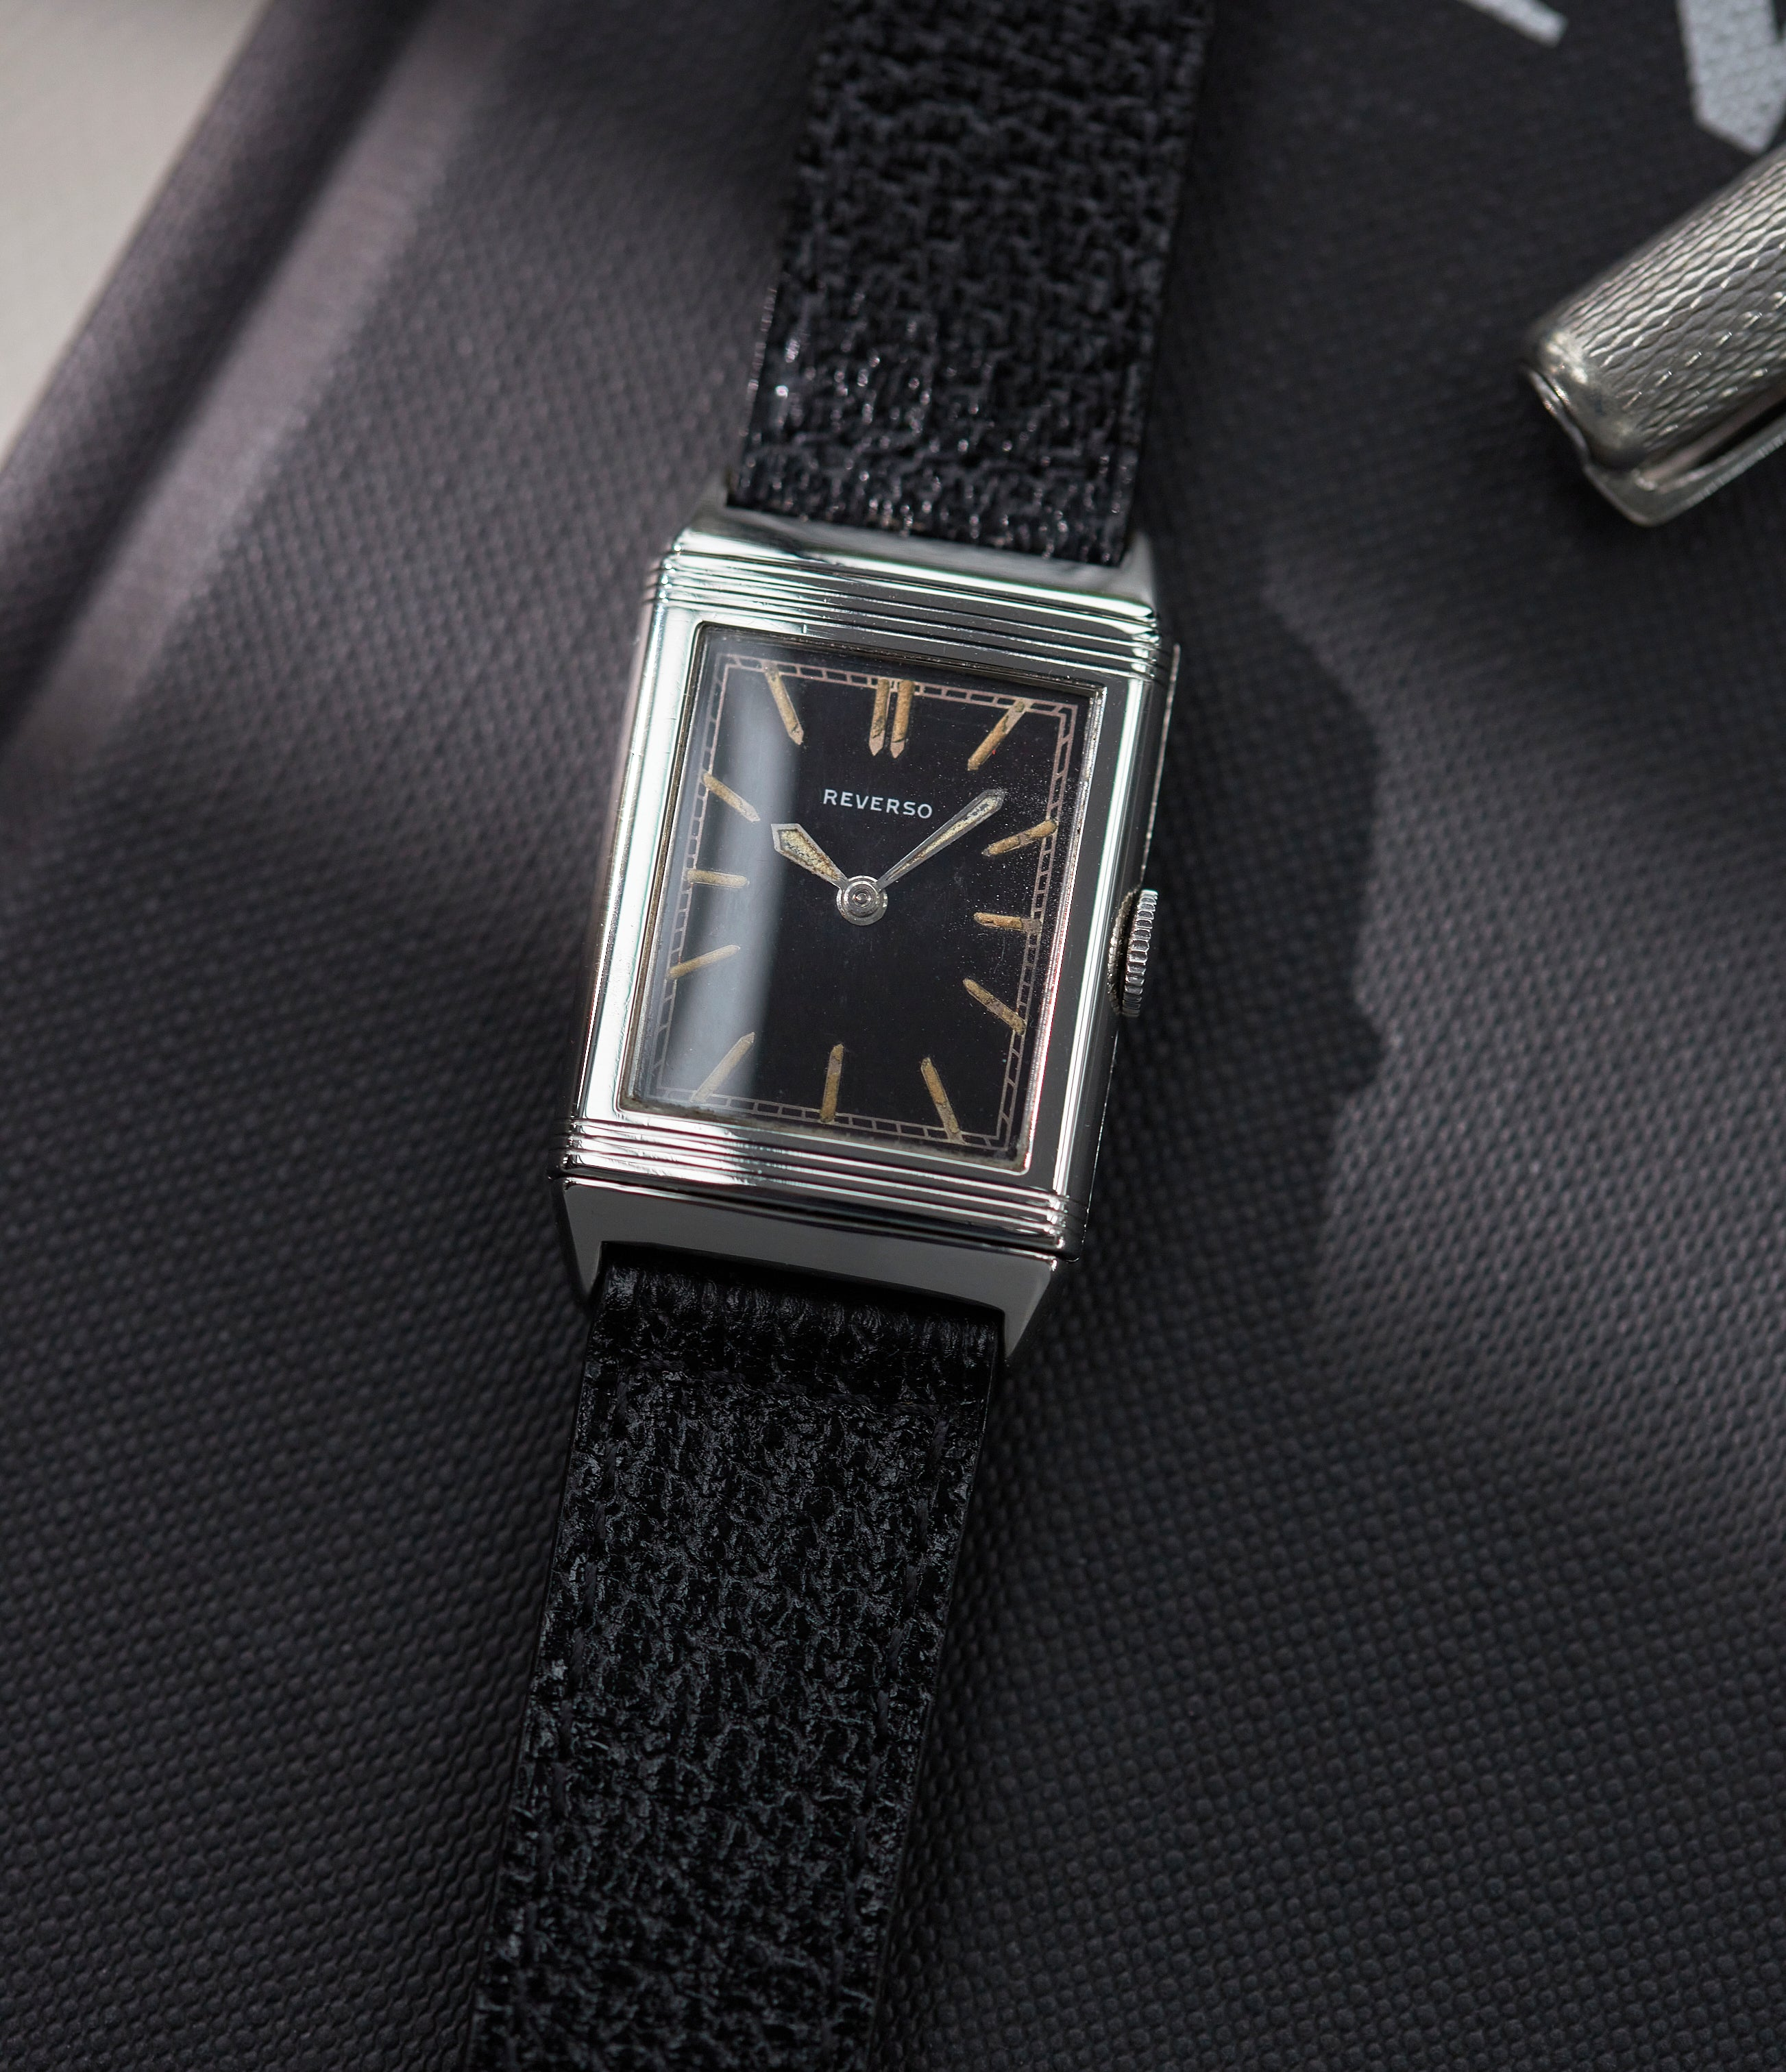 Jaeger-LeCoultre Reverso from 1931 black dial Tavannes movement in The Flippin' History of the Reverso for A Collected Man